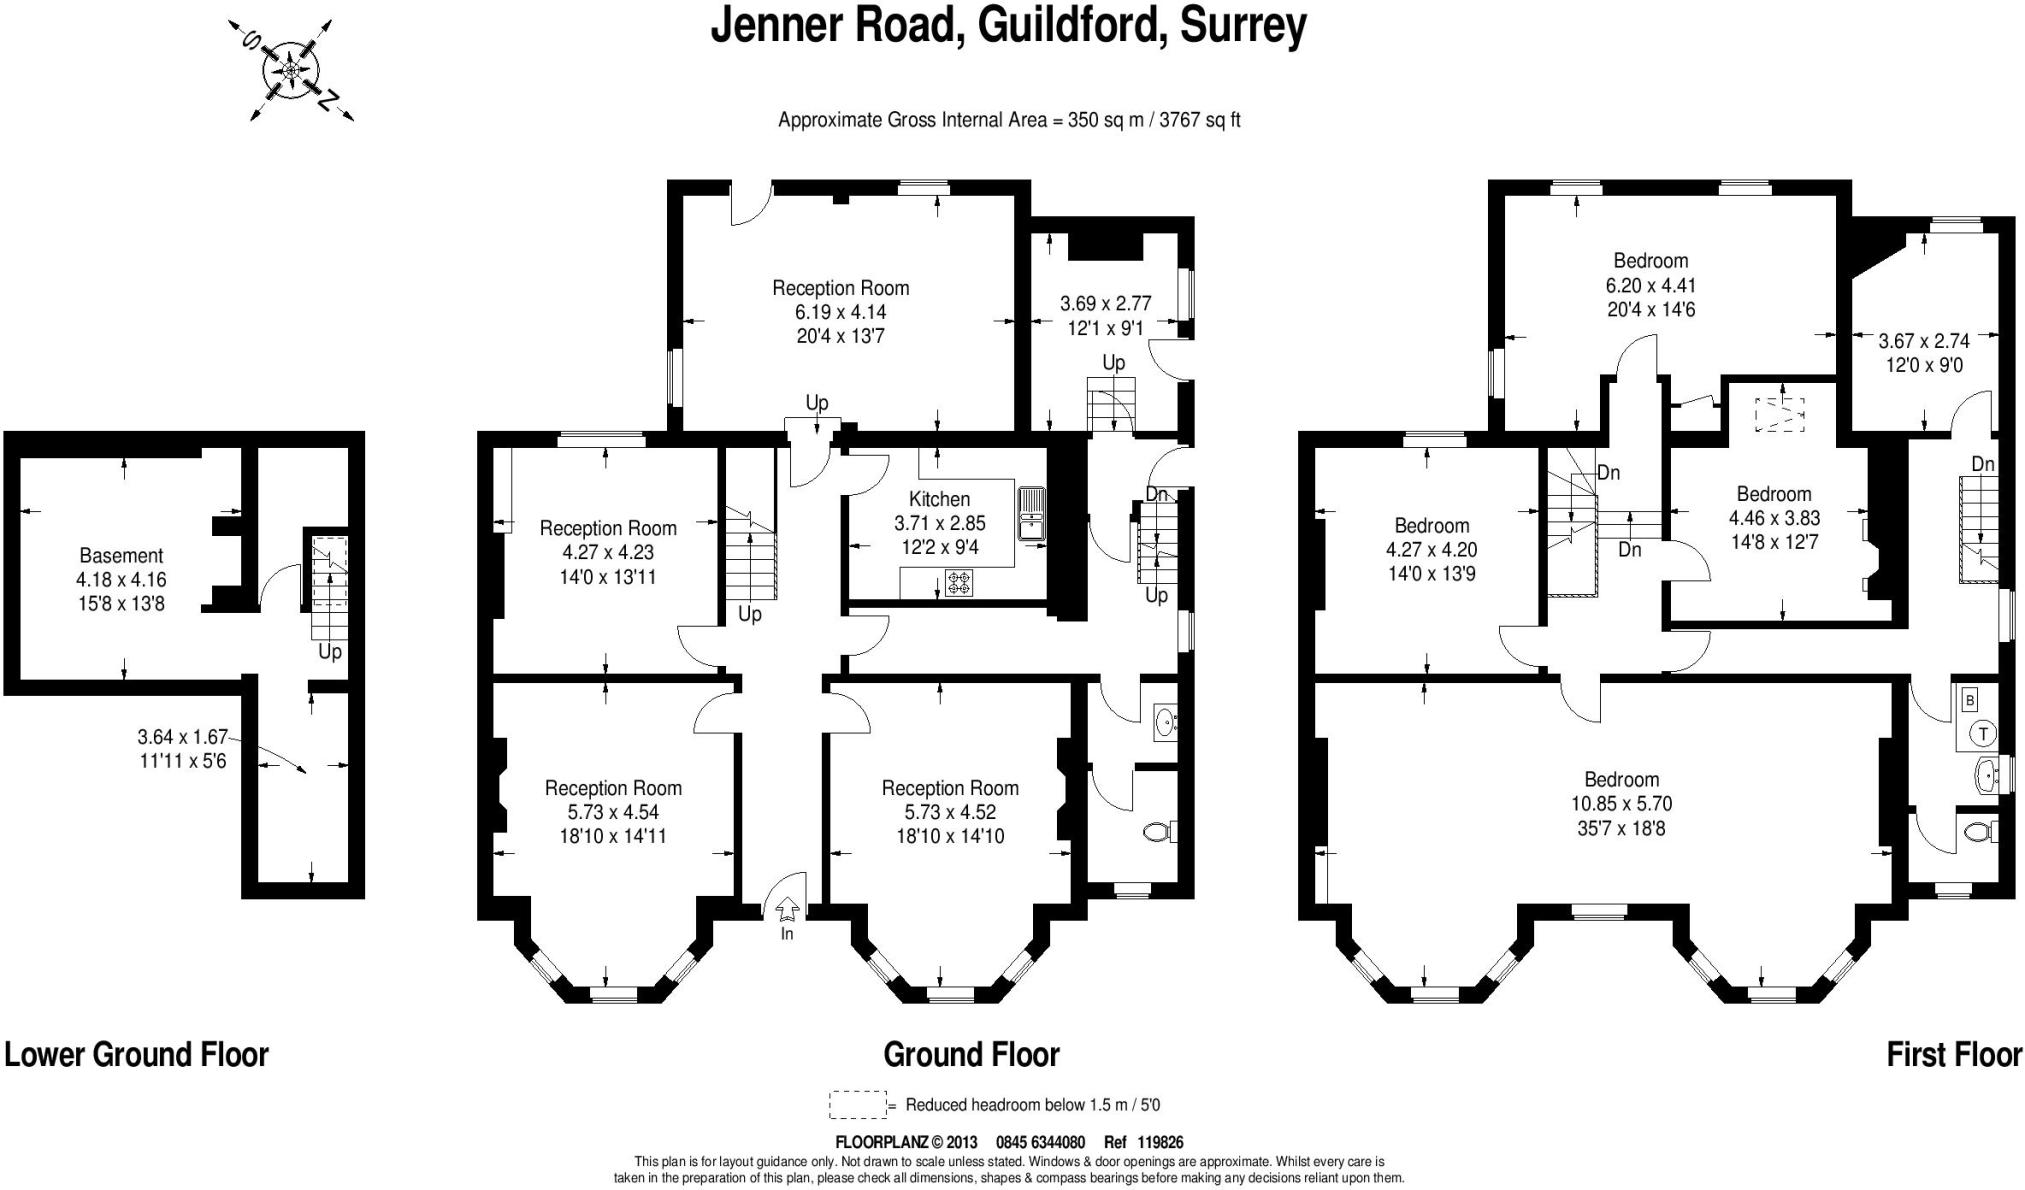 4 bedroom detached house for sale in Jenner Road Guildford